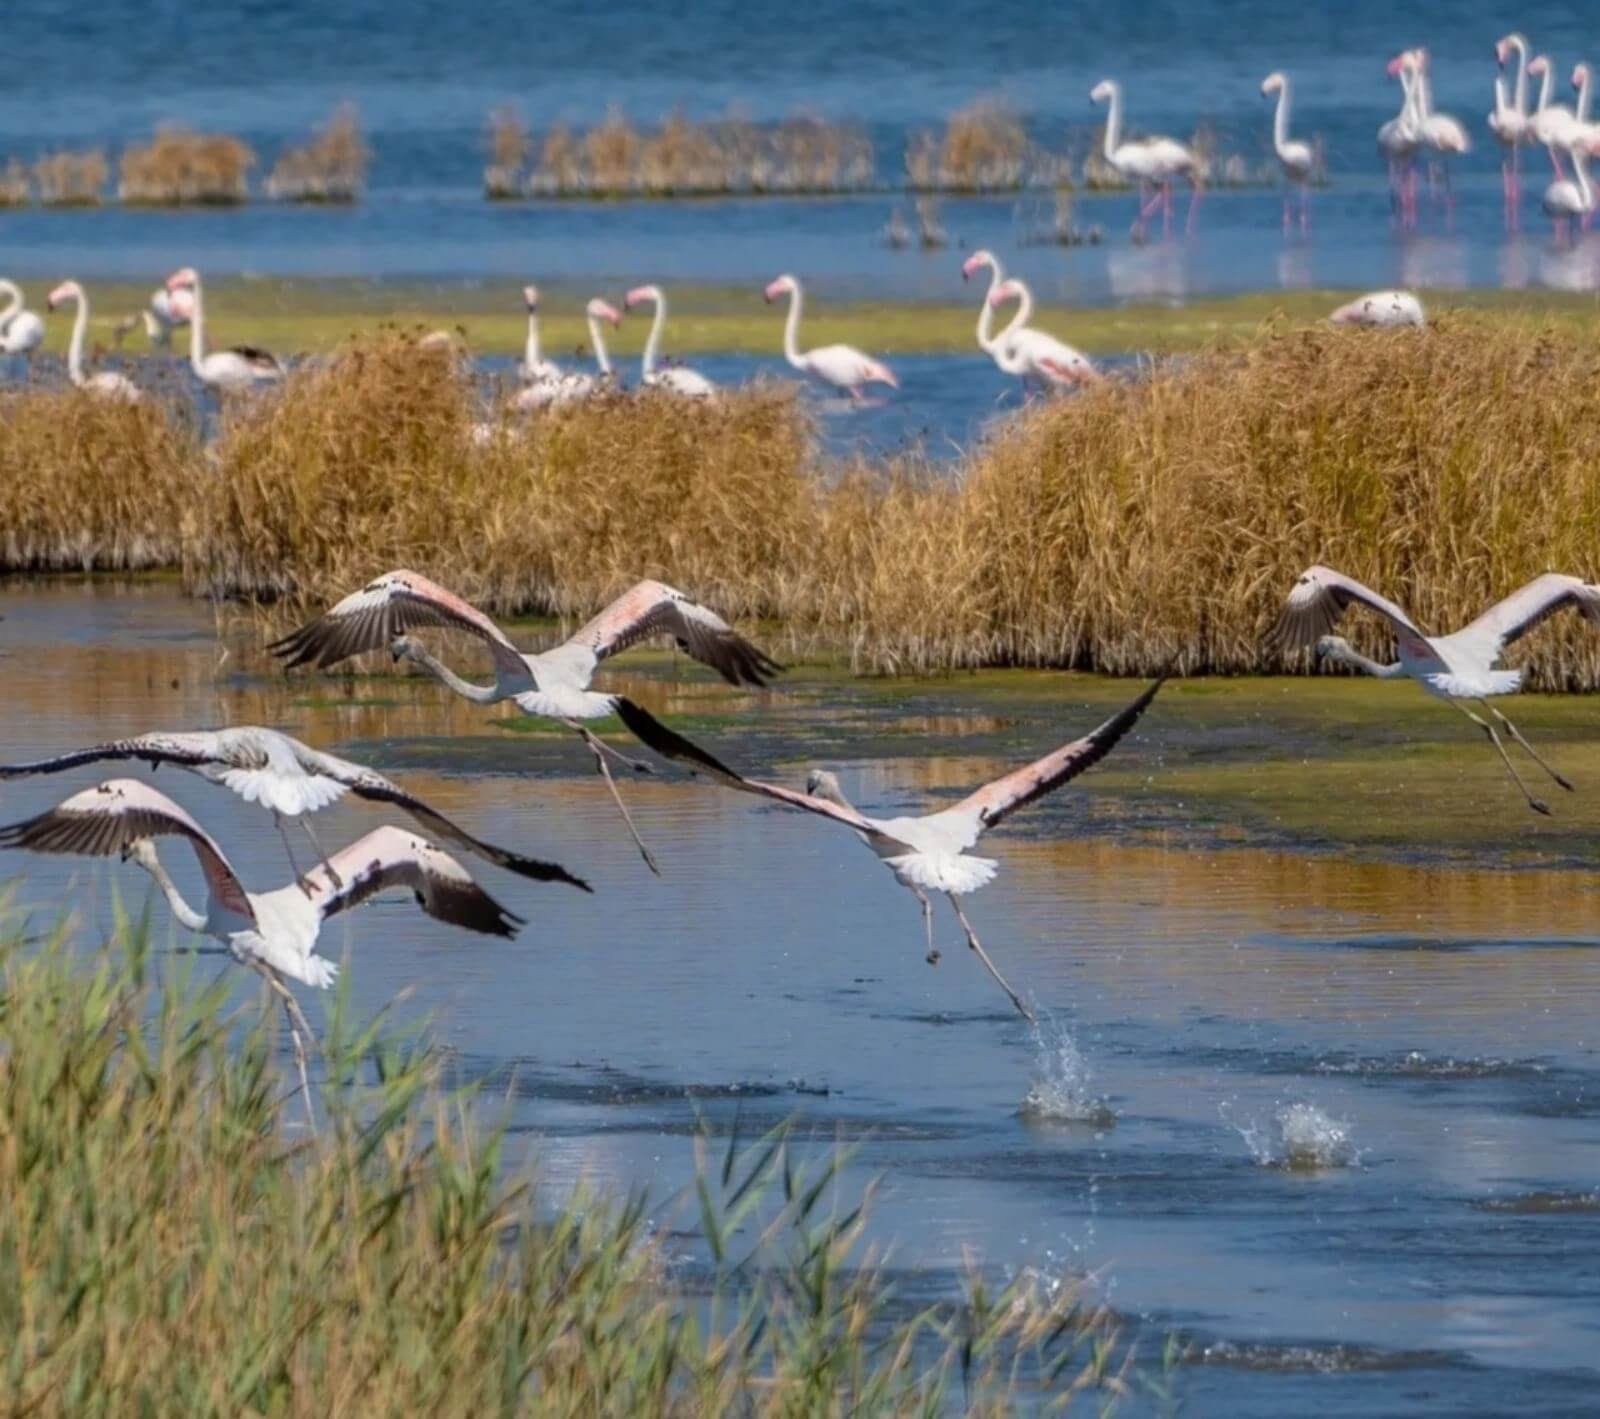 The wingspan of flamingos is 140 to 170 centimeters